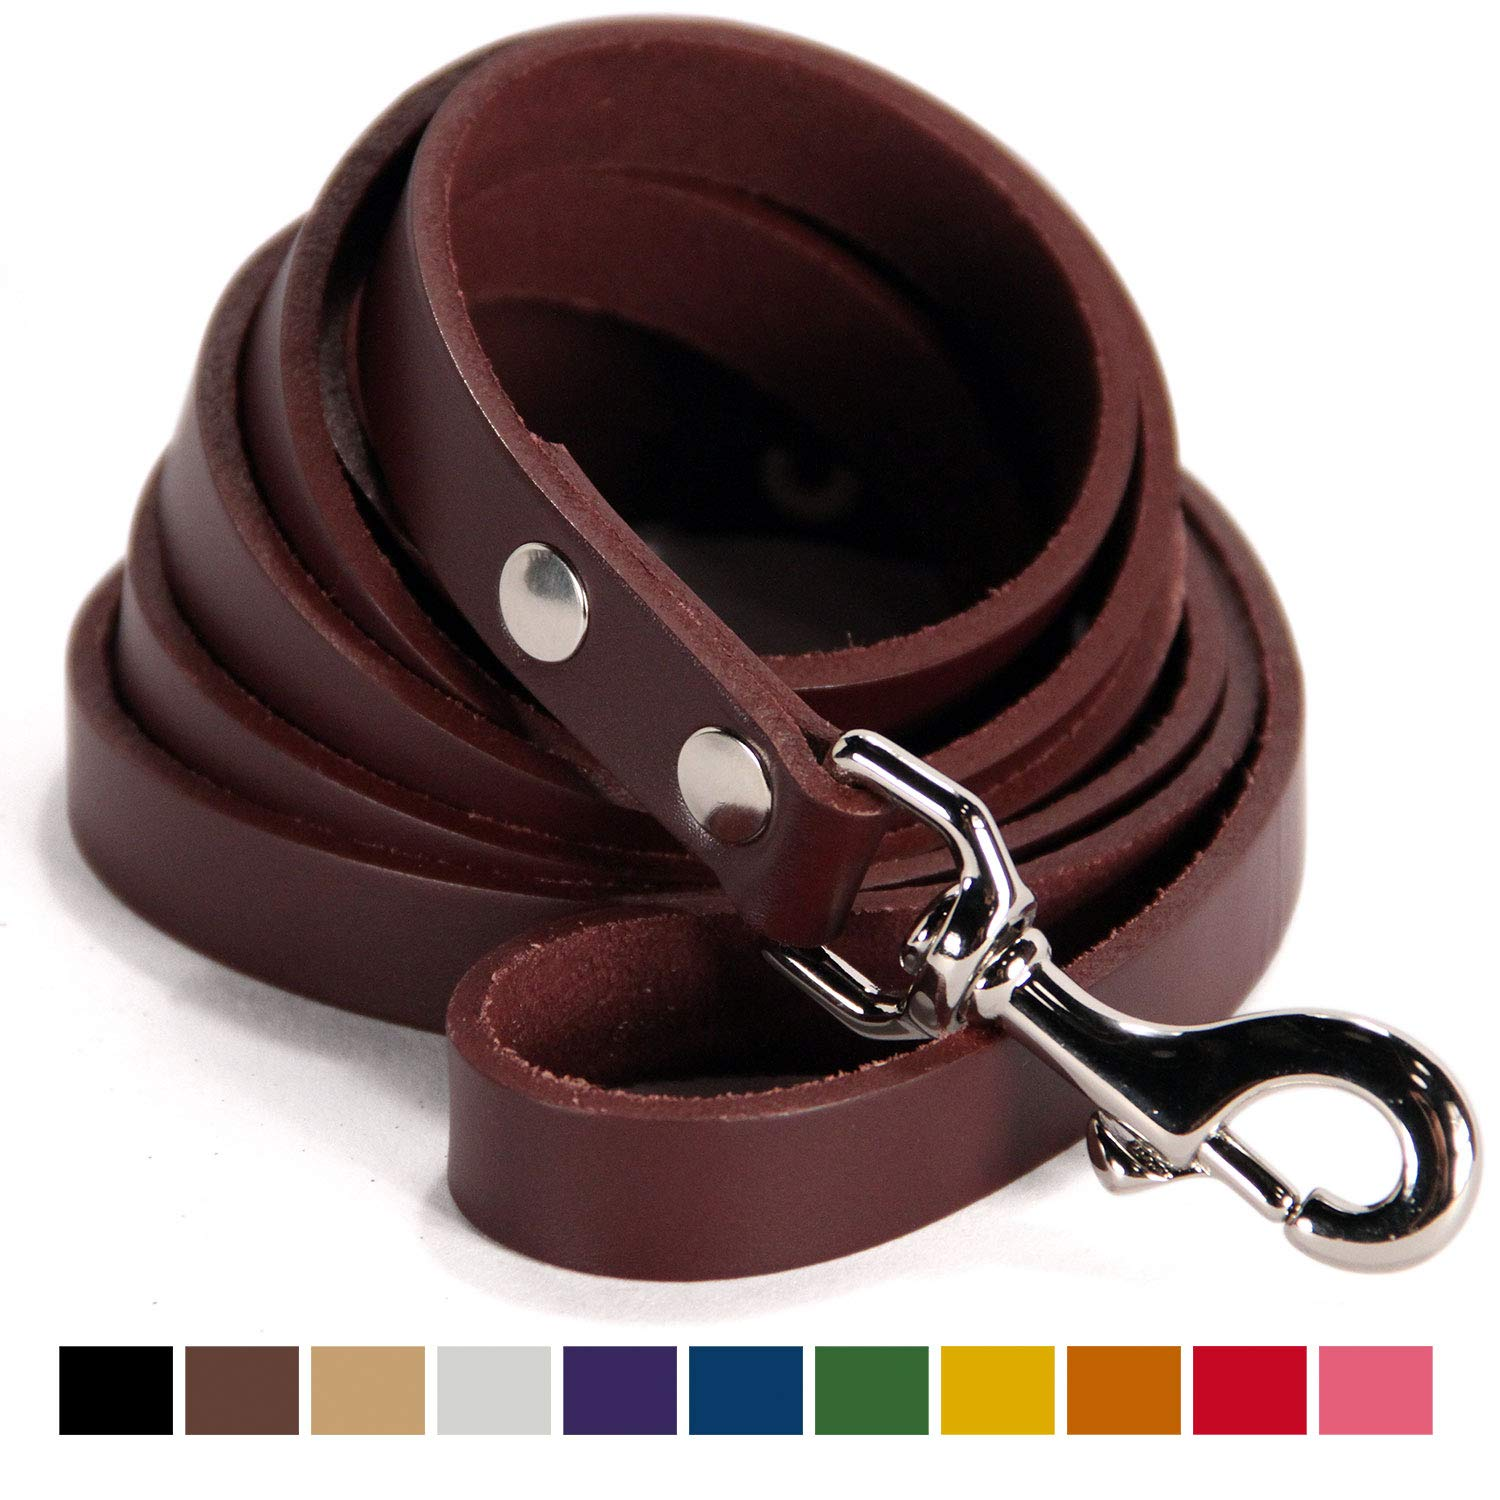 Logical Leather Dog Leash - 6 Foot Heavy Duty Water Resistant Full Grain Leather Lead; Best for Training - Cordovan